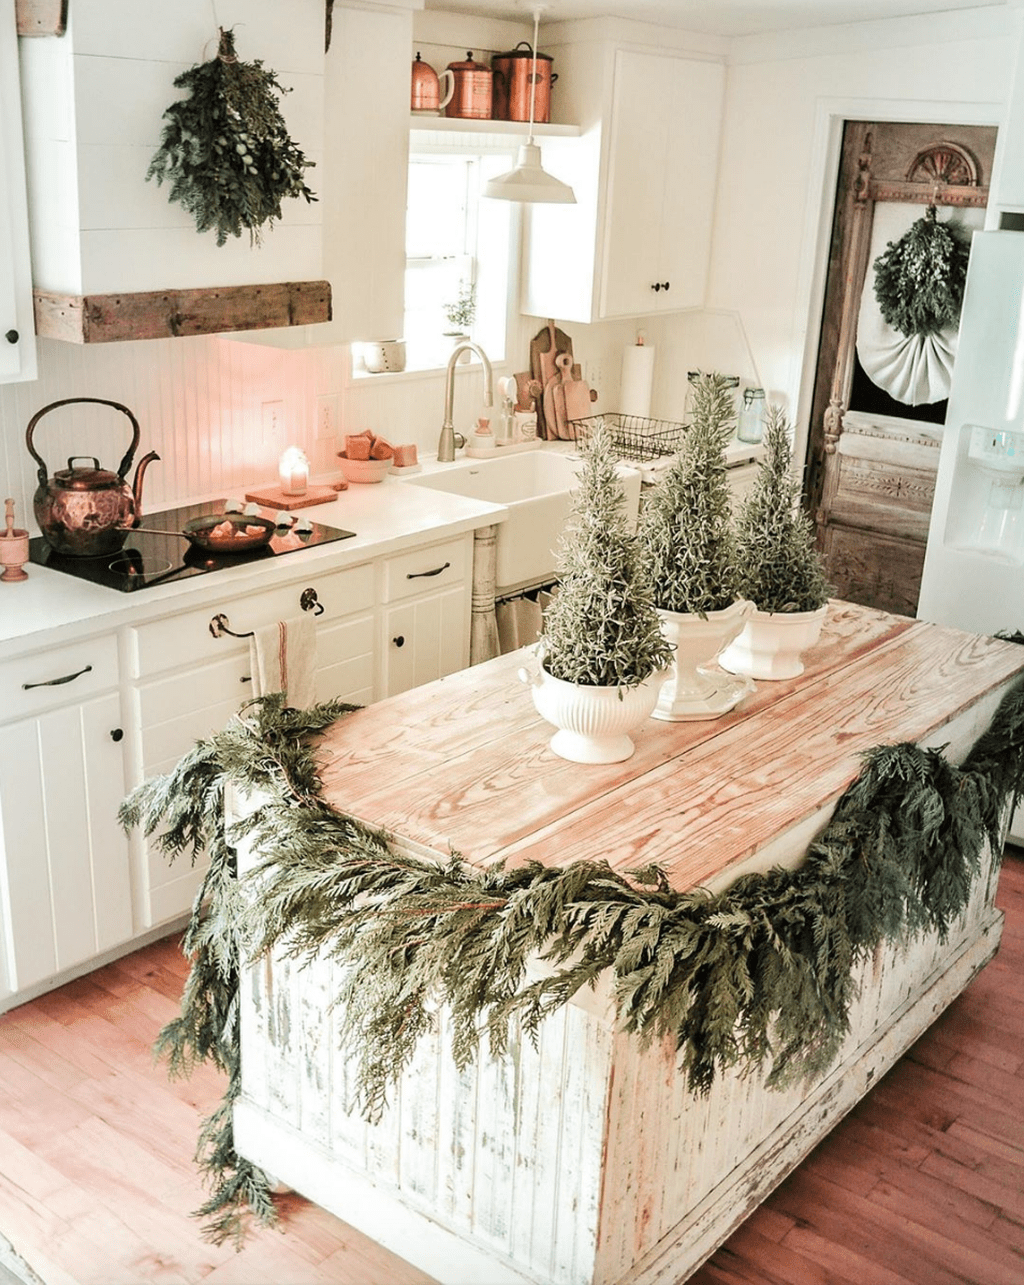 Popular Christmas Decor Ideas For Kitchen Island 03